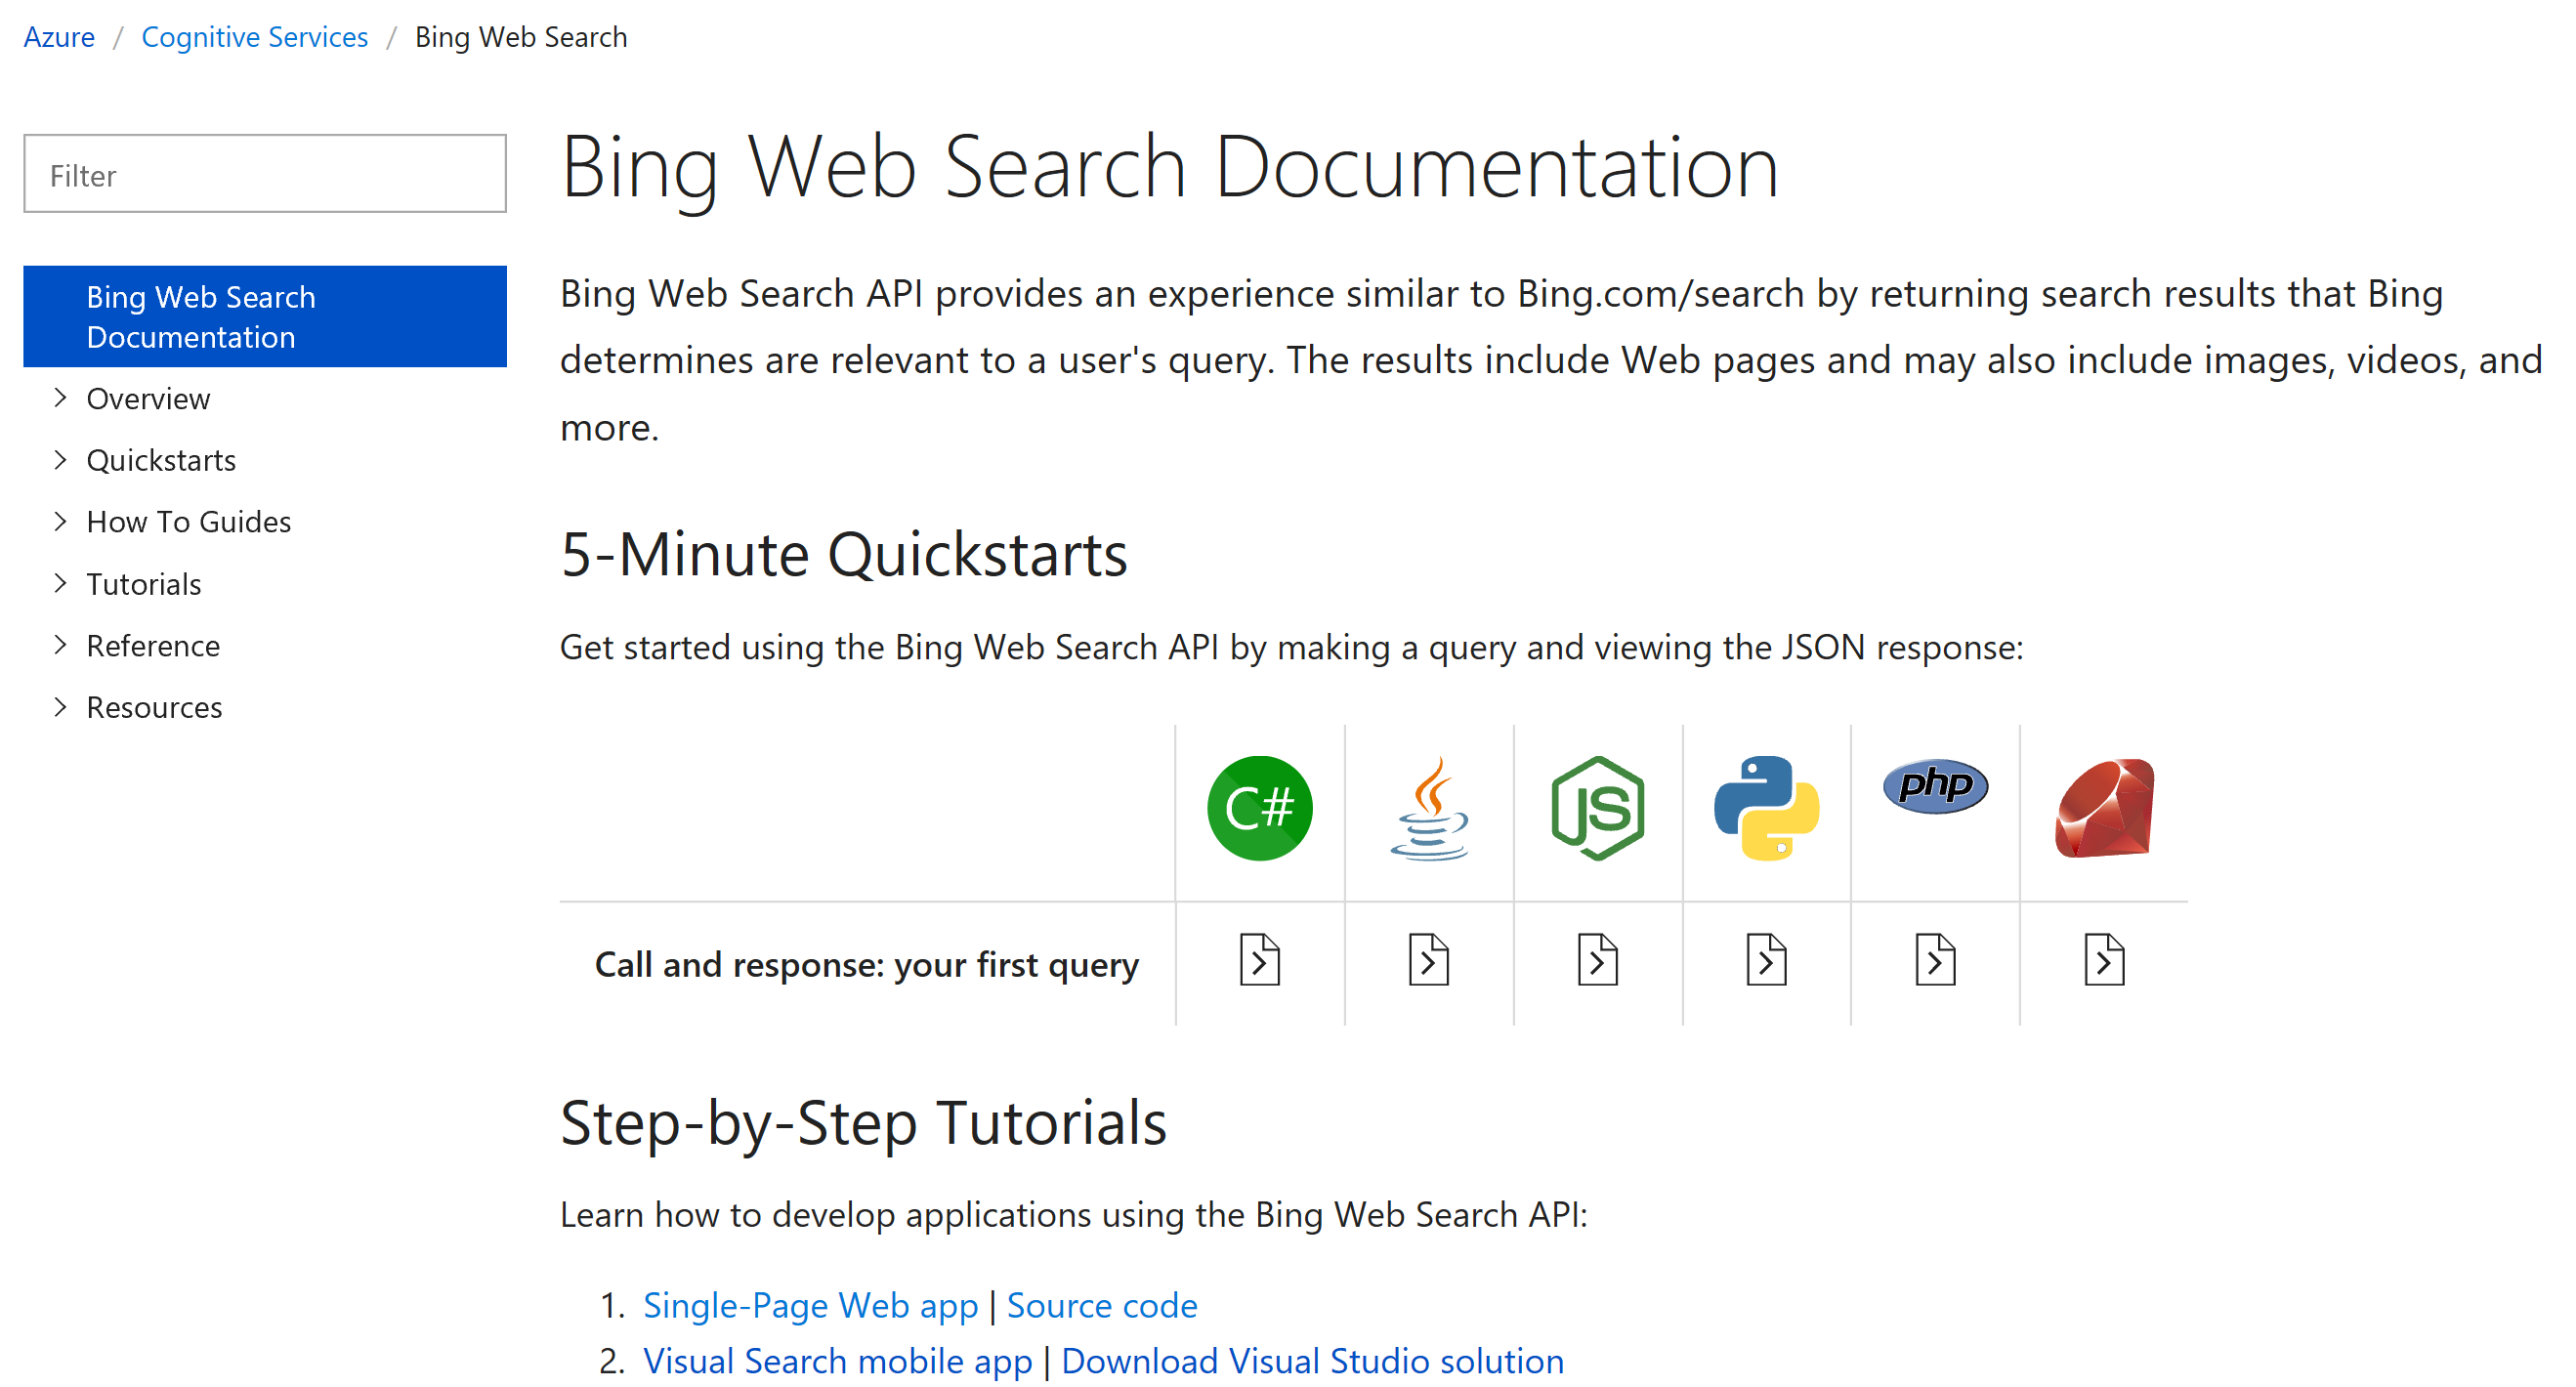 Bing Web Search Documentation